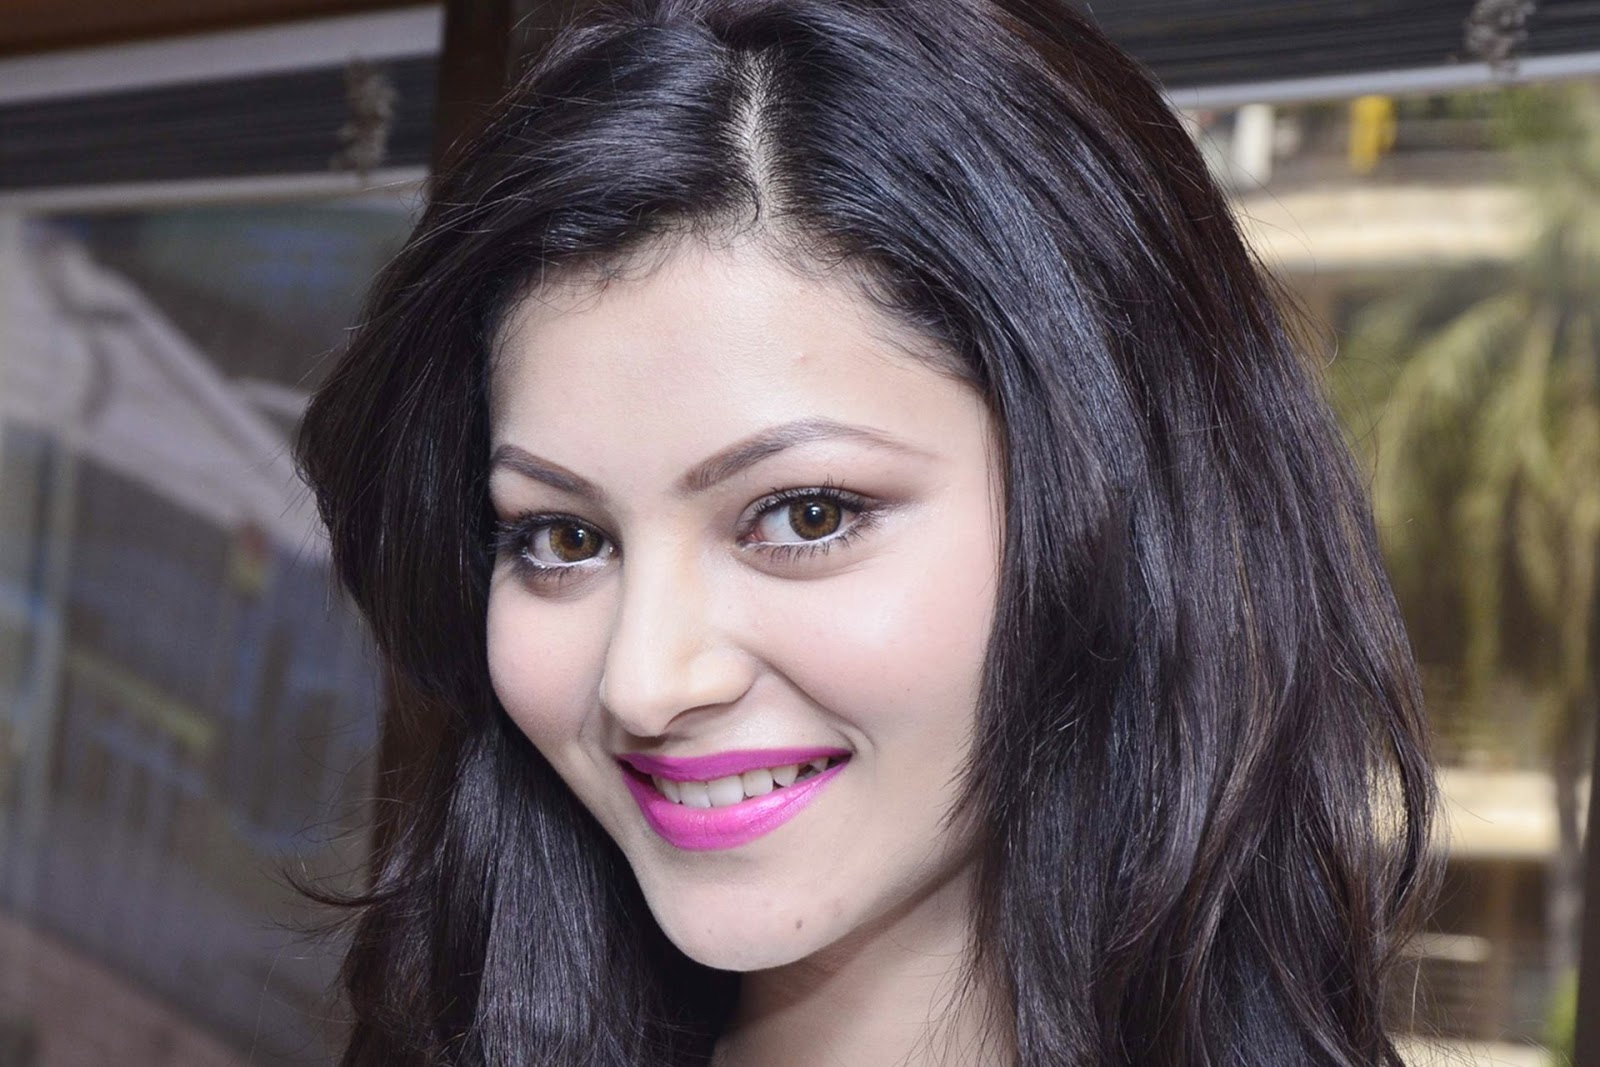 Beautiful Urvashi Rautela Smile Hd Wallpaper Free Download